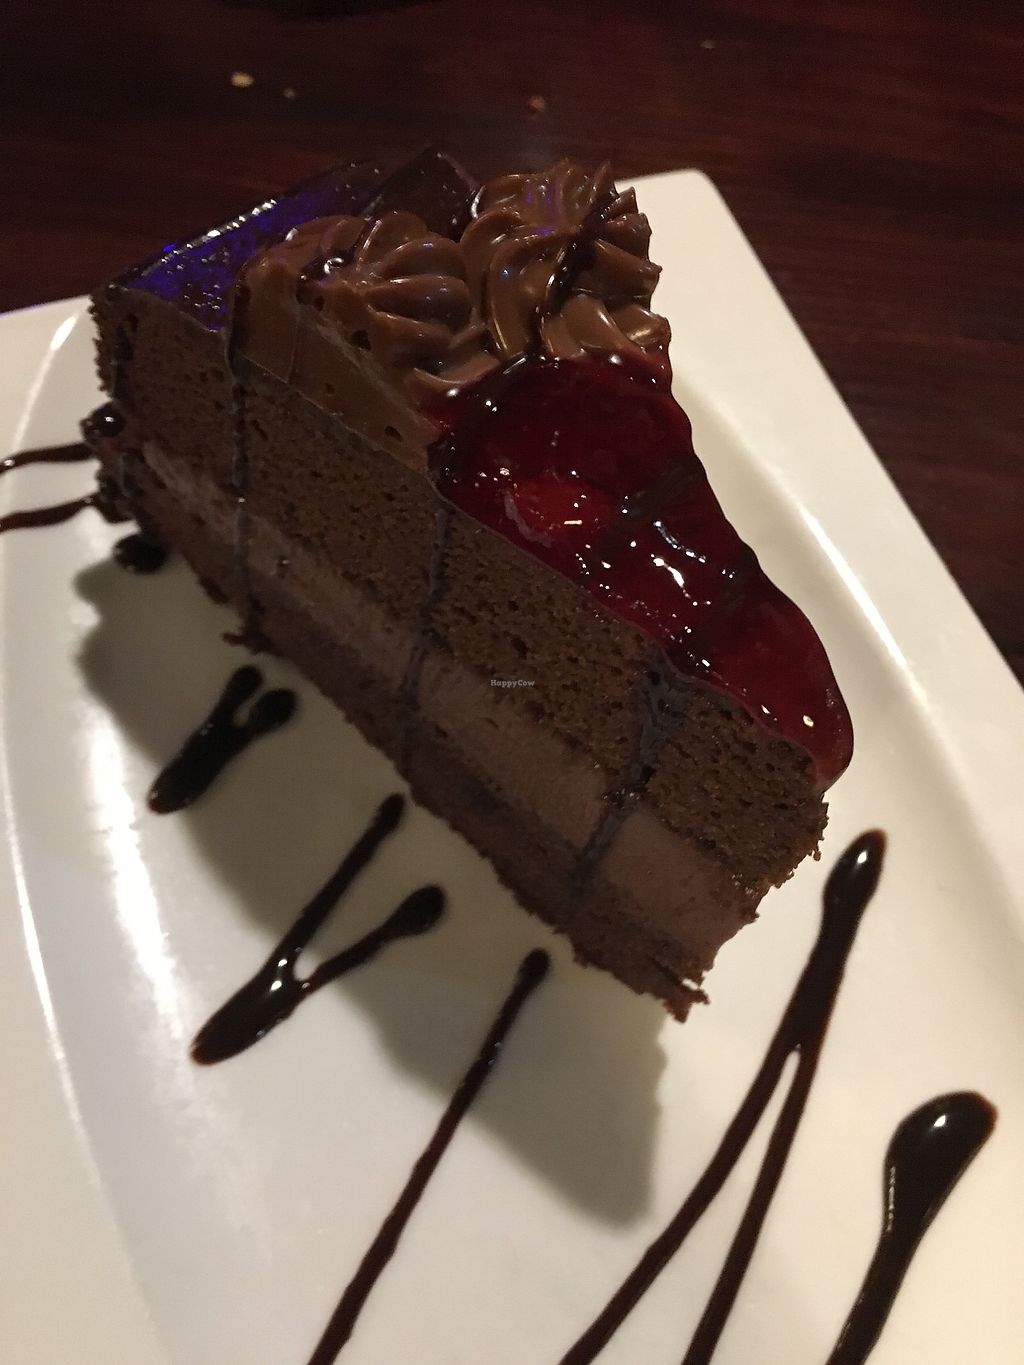 """Photo of Veggie Fun  by <a href=""""/members/profile/RheaneDompierre"""">RheaneDompierre</a> <br/>Chocolate cake <br/> November 22, 2017  - <a href='/contact/abuse/image/34687/328129'>Report</a>"""